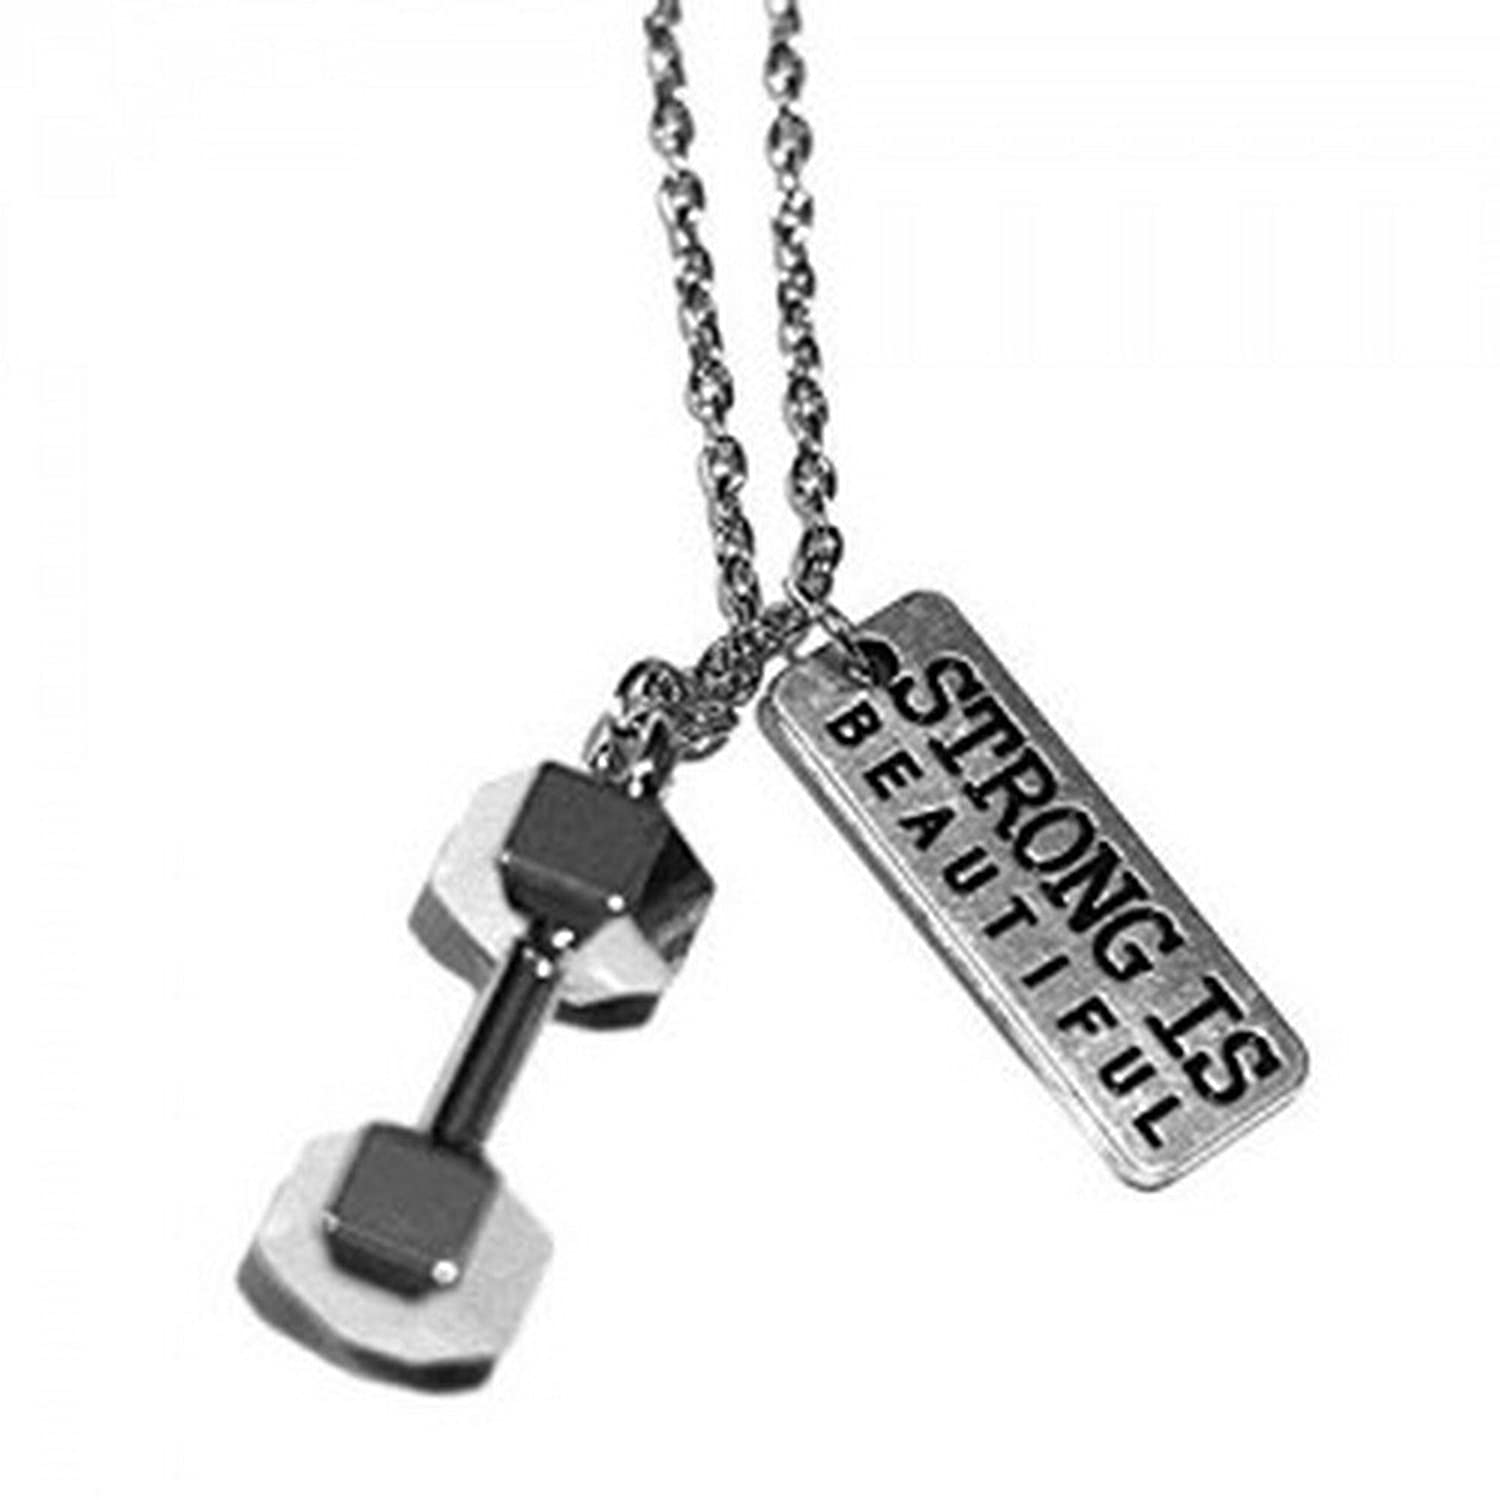 Original Strong Is Beautiful Necklace With Weight Lifting Barbell ...